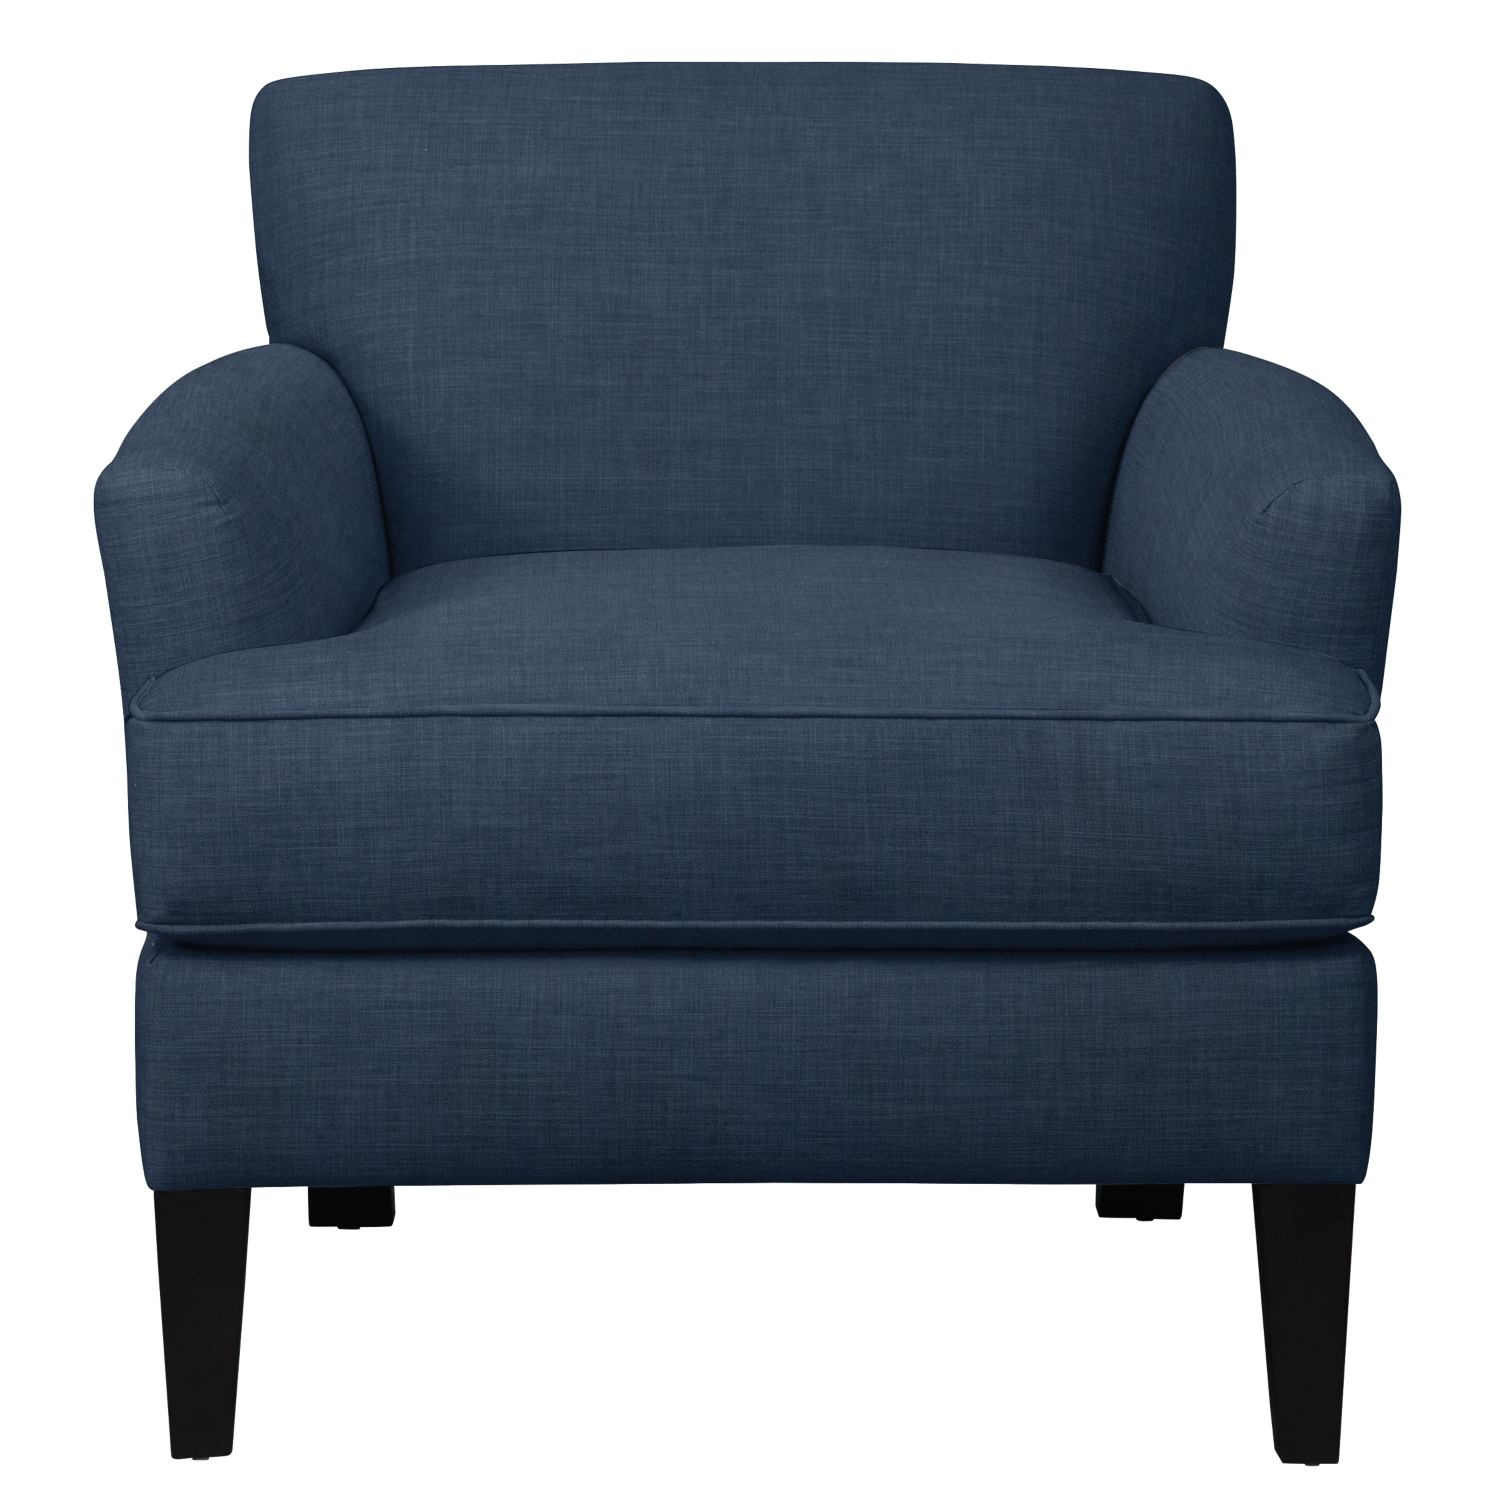 Living Room Furniture - Marcus Chair w/ Oakley III Ink Fabric